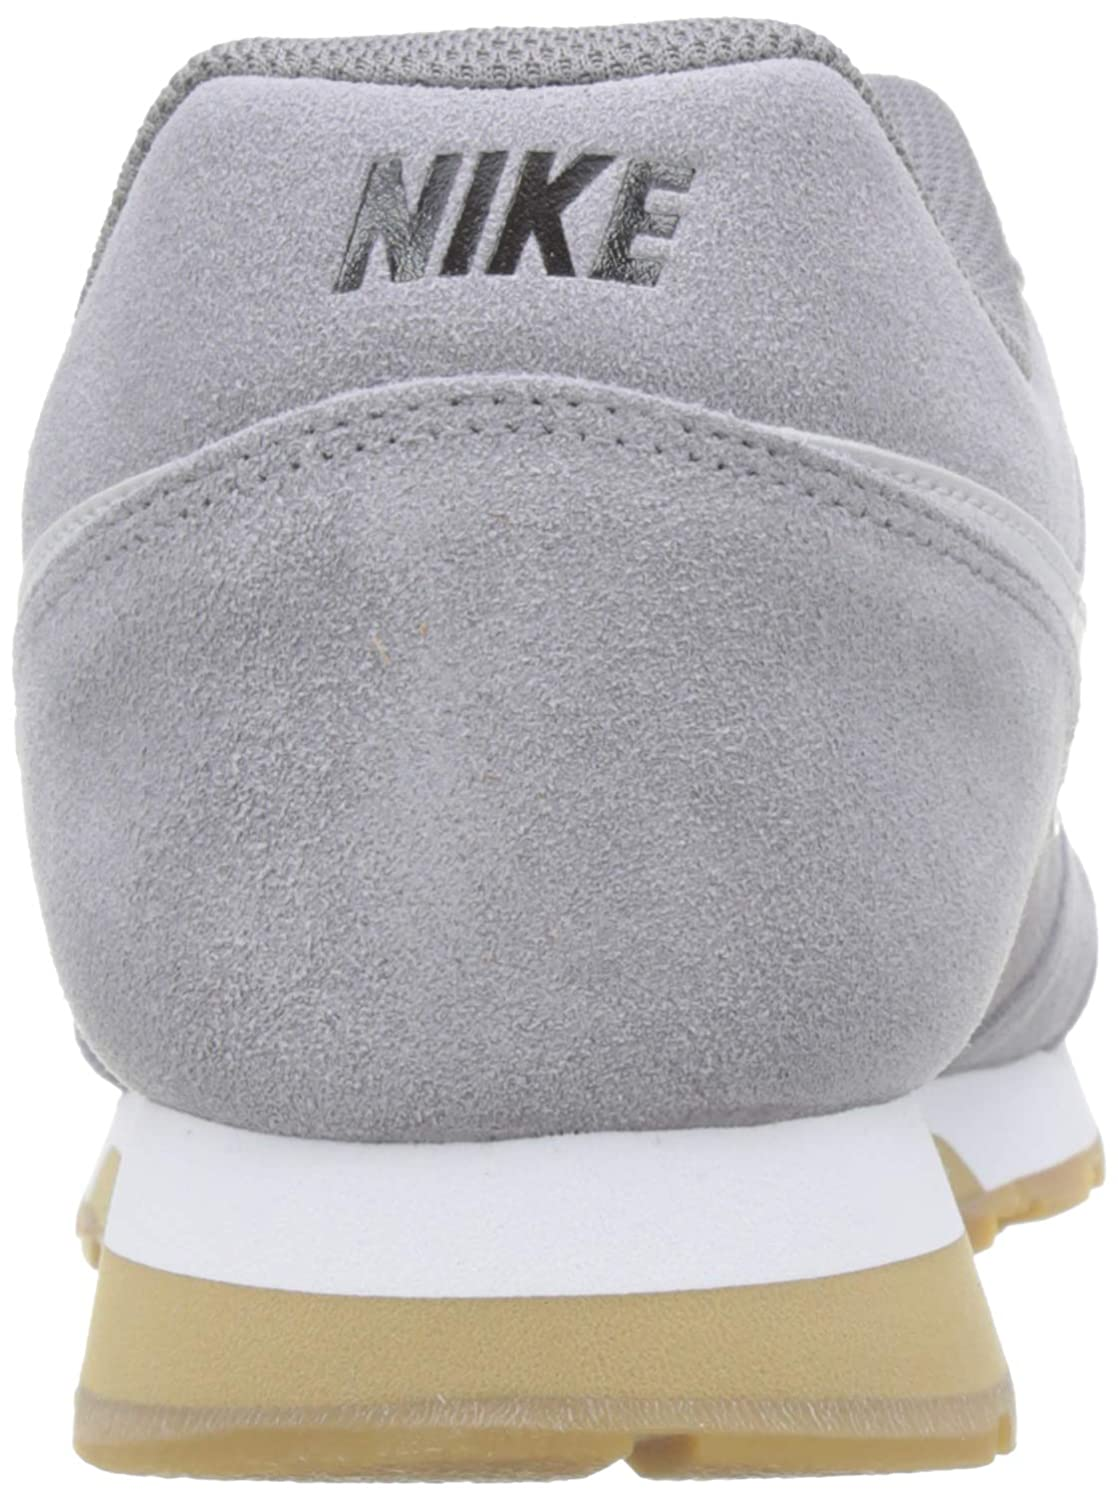 c78840bea8 Nike Men's Air Max 1 SP Liquid Silver Running Shoes - 635786 002, Metallic  Silver/Metallic Silver-Light Bn - Size 5 D(M) US: Amazon.ca: Shoes &  Handbags